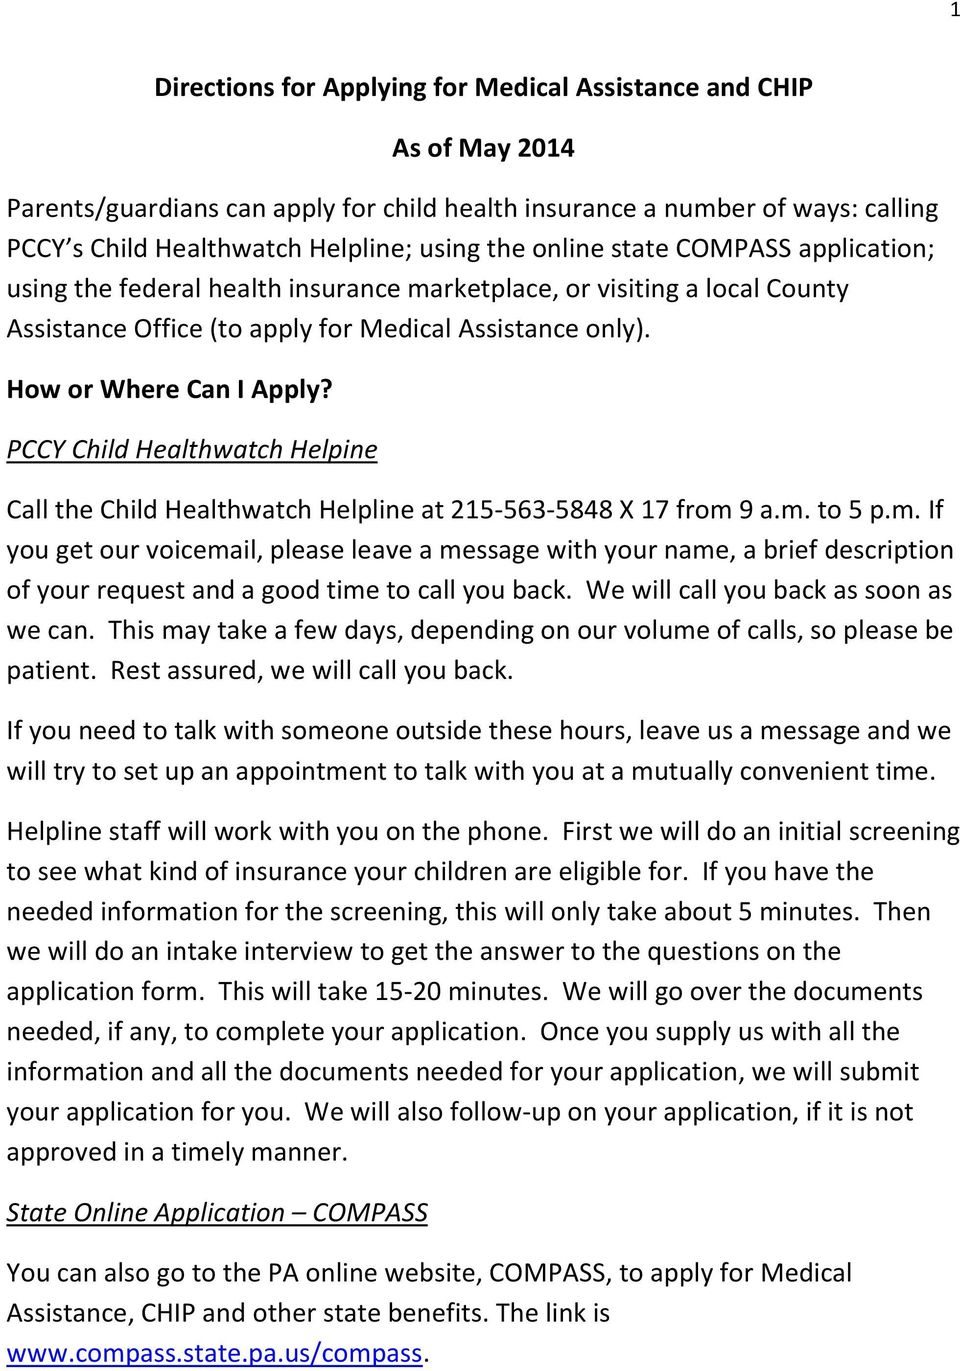 Directions for Applying for Medical Assistance and CHIP  As of May PDF